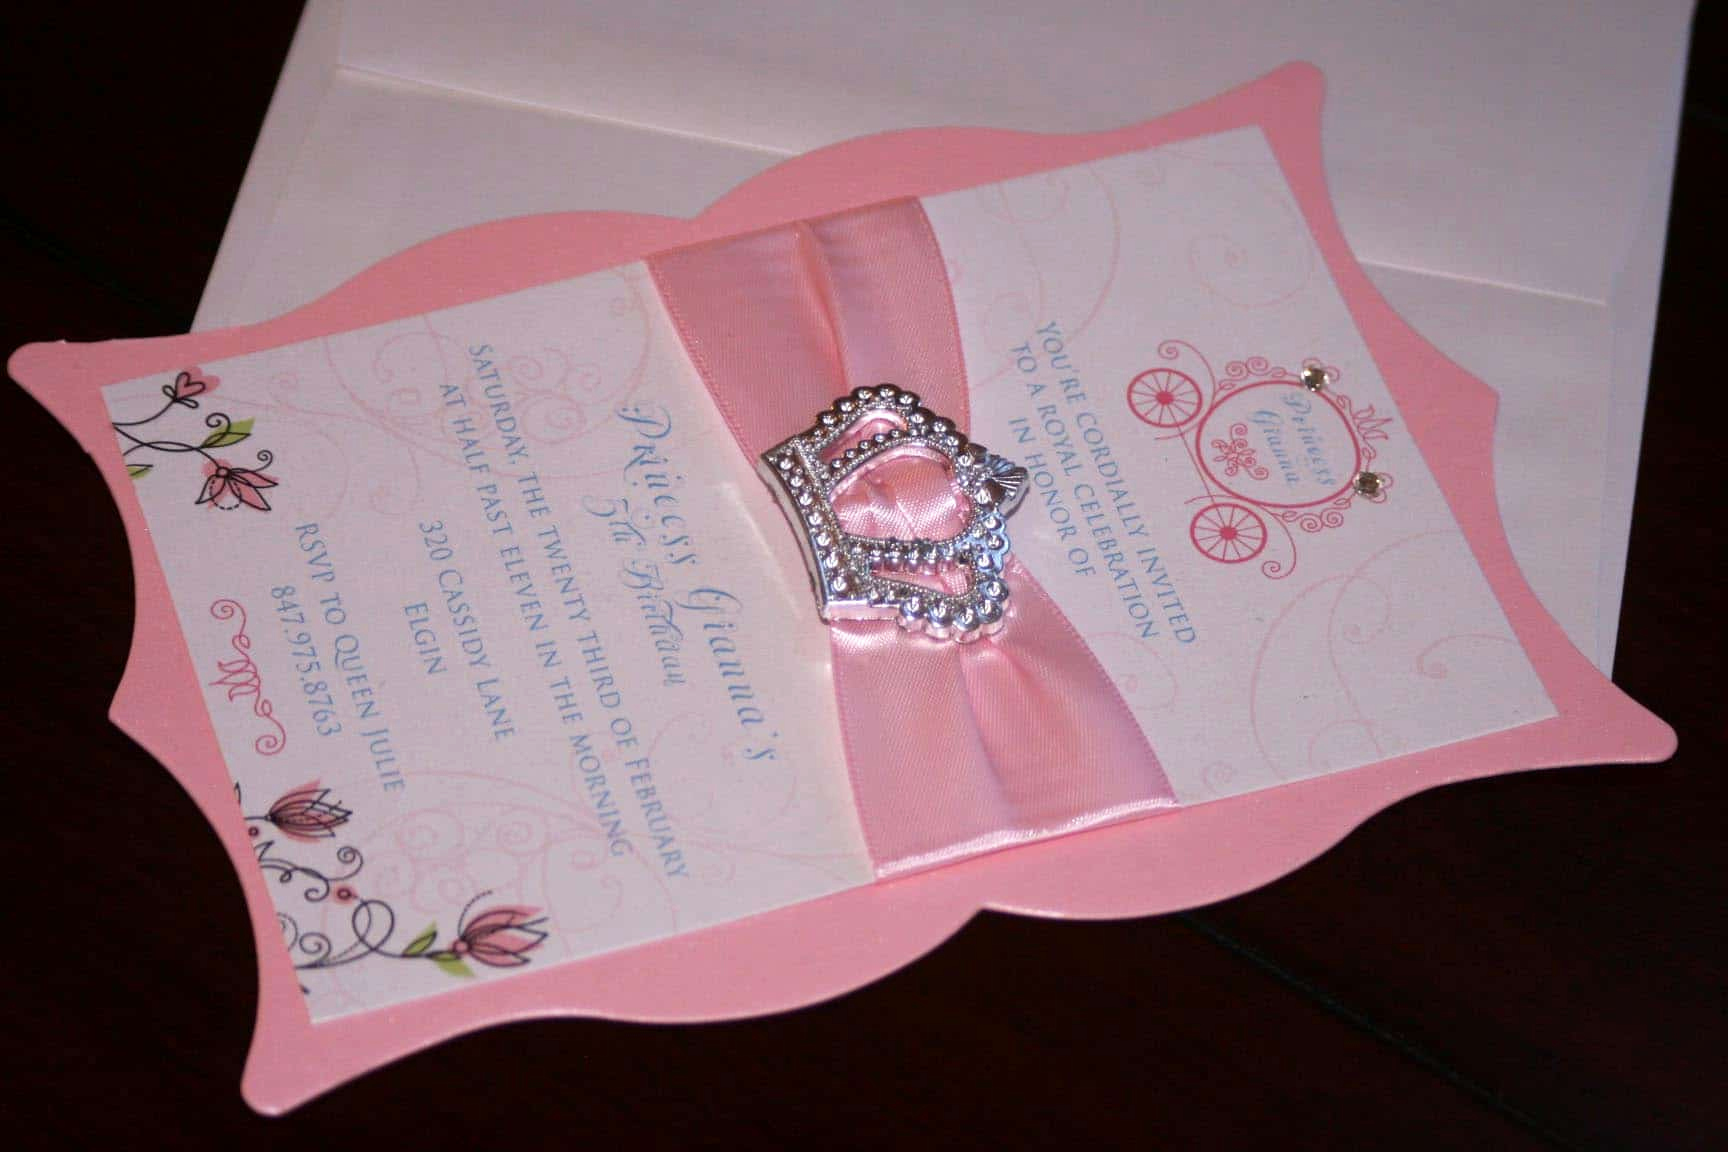 Princess Tea Party Invitation Wow Lovely Princess Birthday Invitations too Chic & Little Shab